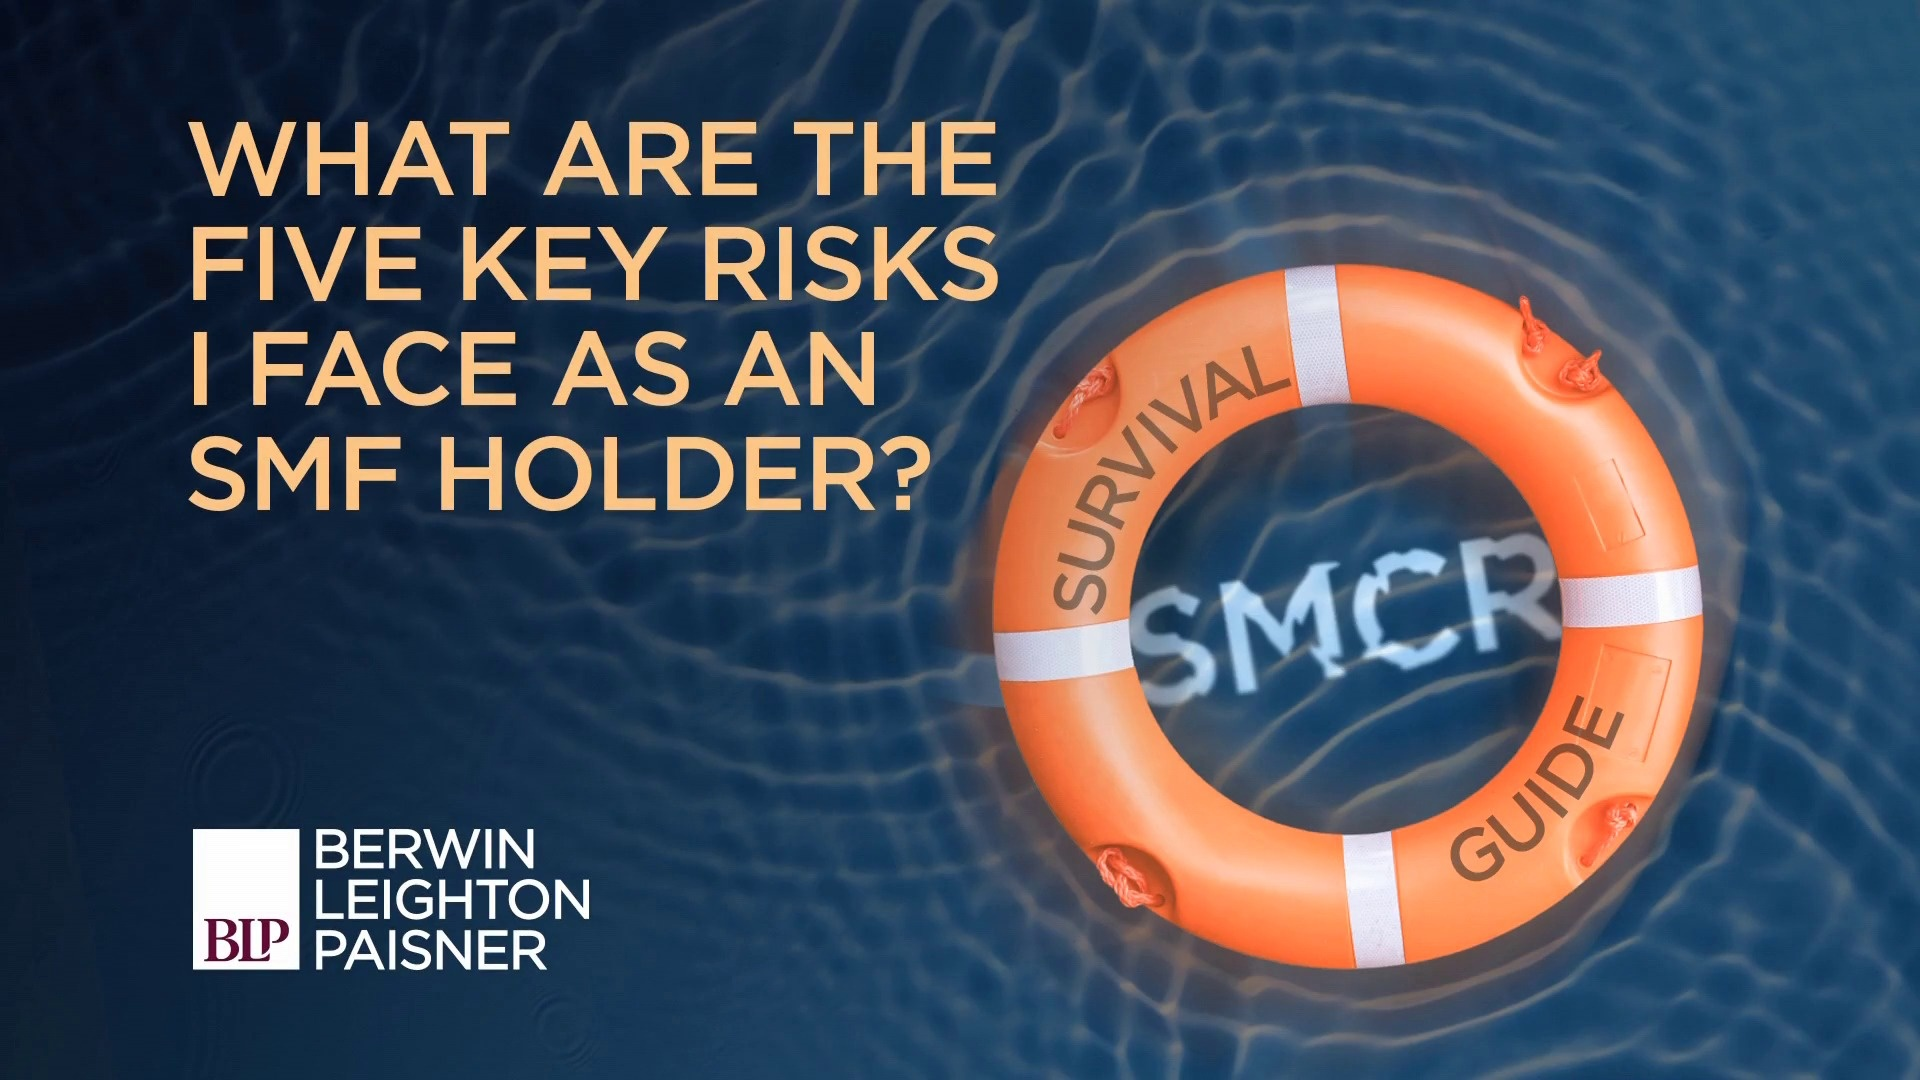 Still image from 'SMCR: What are the five key risks I face as an SMF holder?' video